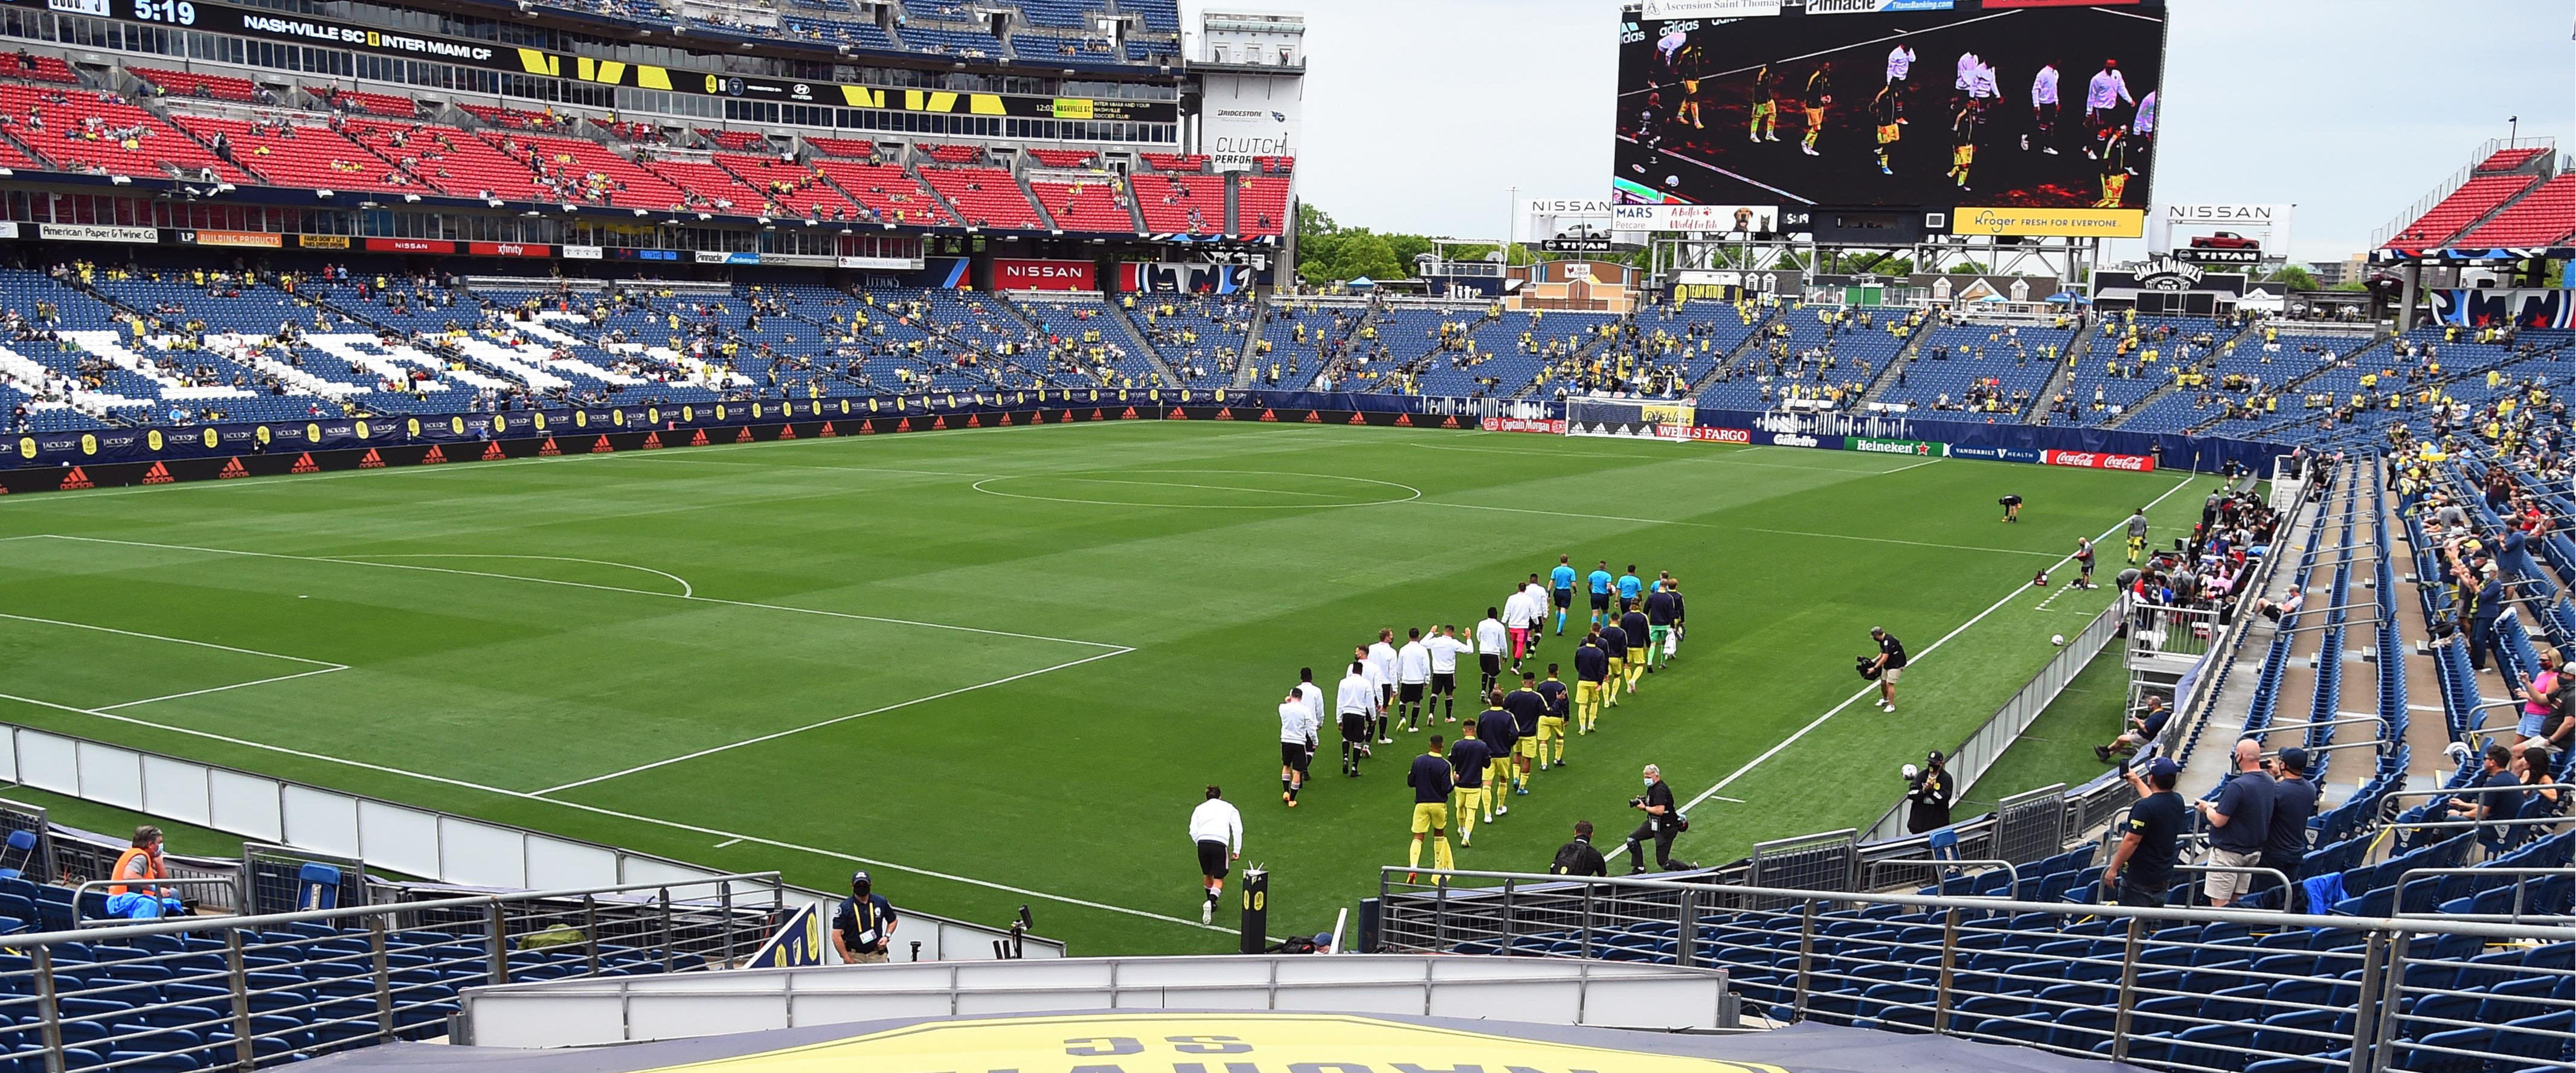 Nashville SC is entering must-win territory this weekend